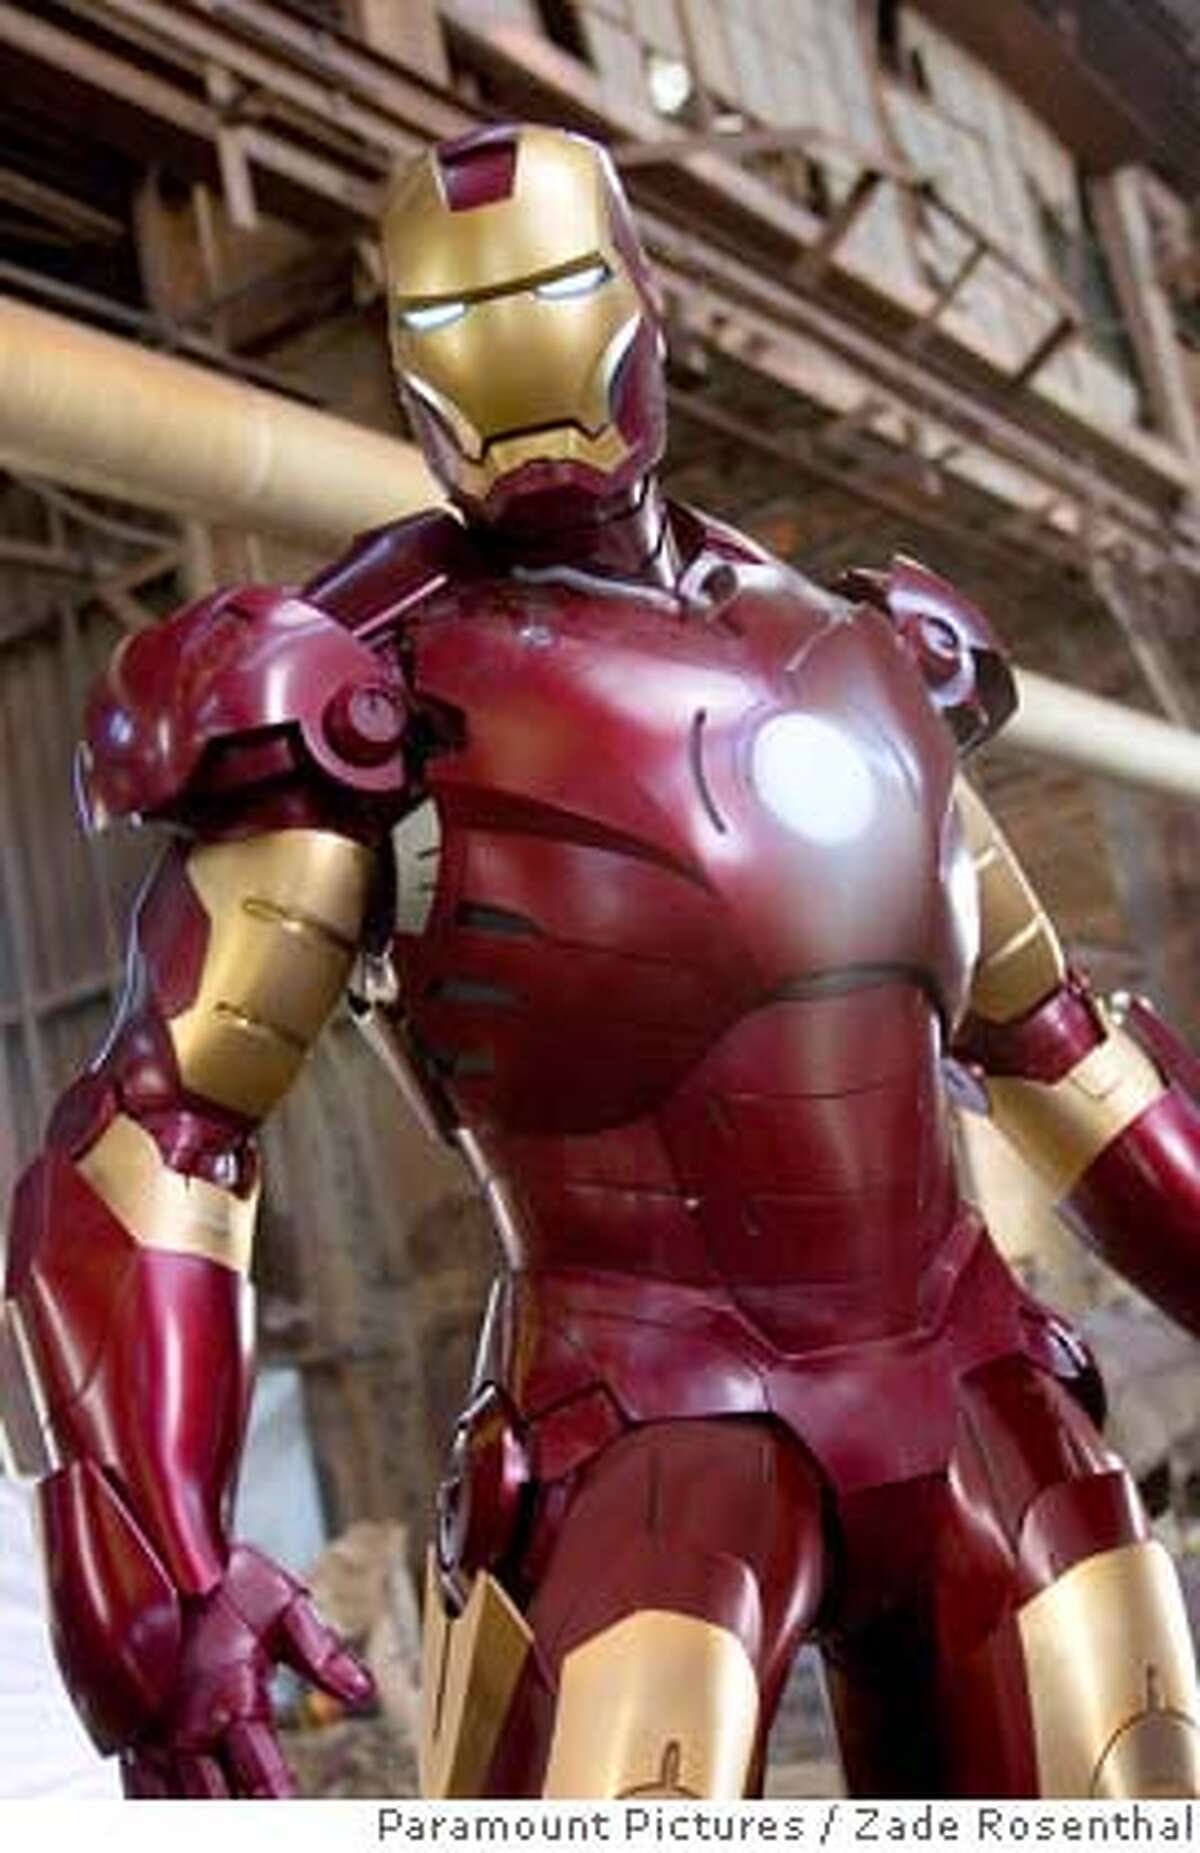 Iron Man aloft in his air-worthy Mark III armor in �Iron Man.� Paramount Pictures and Marvel Entertainment Present A Marvel Studios Production in Association with Fairview Entertainment A Jon Favreau Film �Iron Man� starring Robert Downey Jr. Photo Credit: Zade Rosenthal